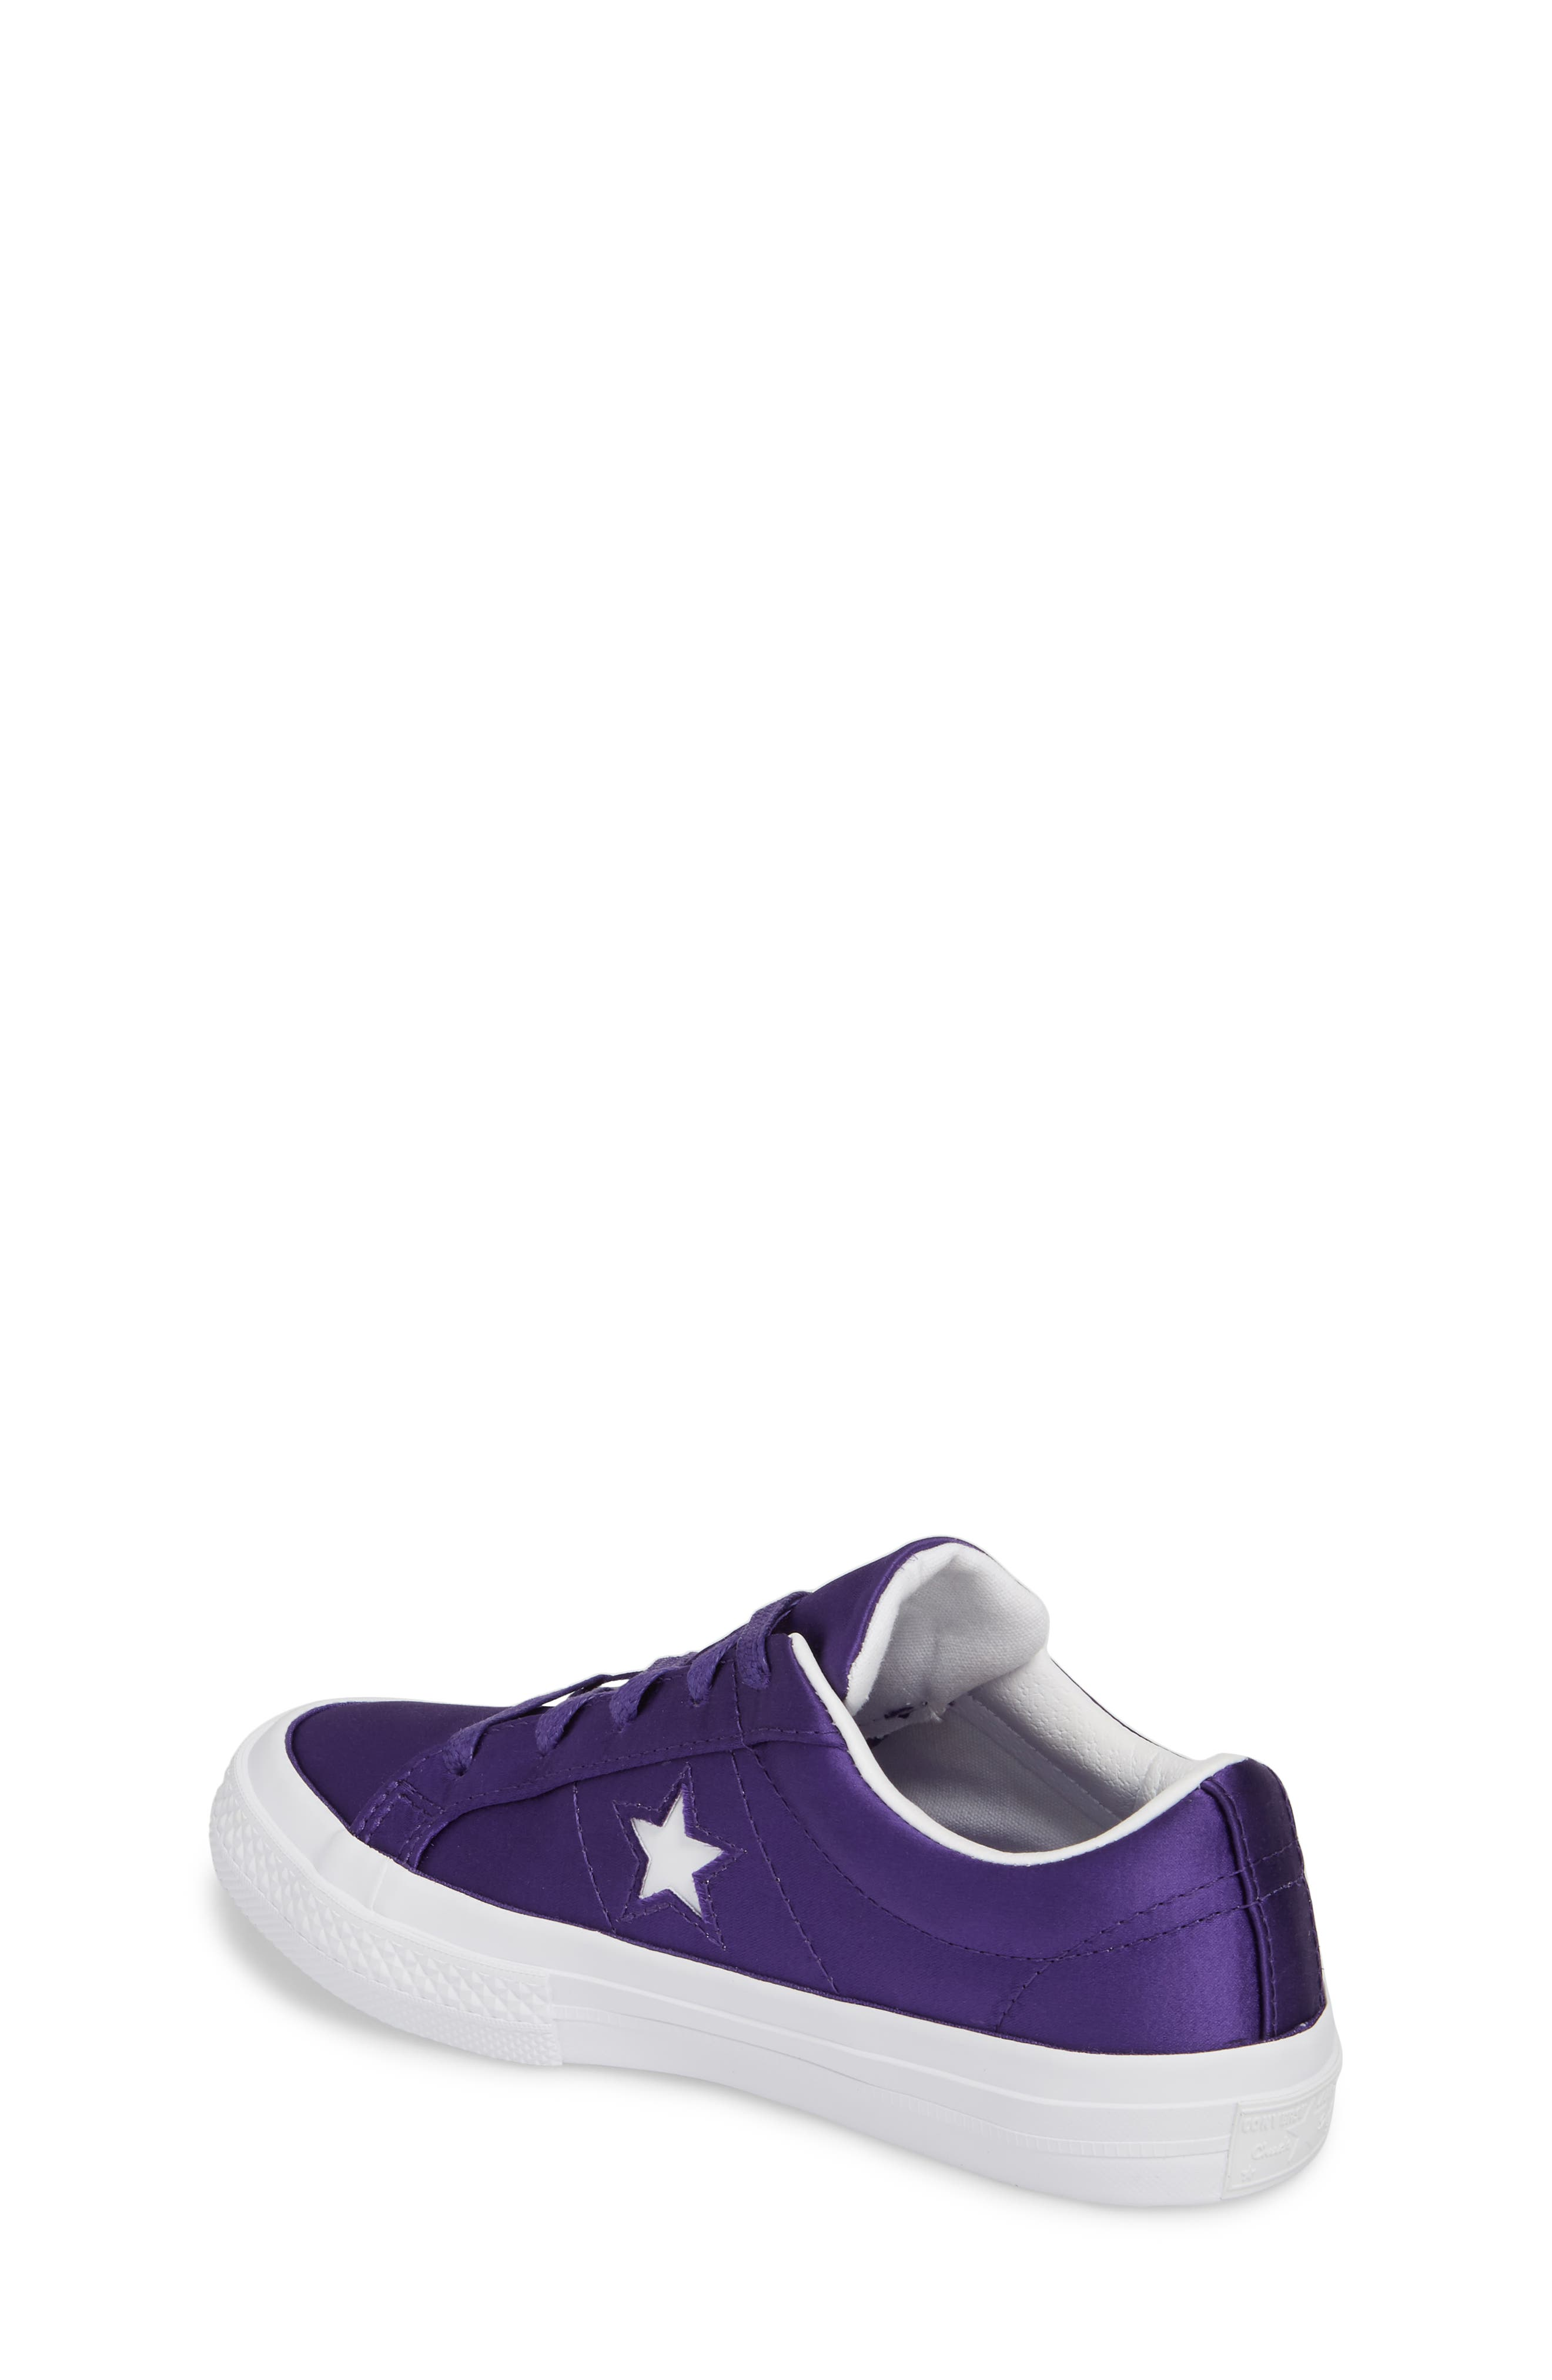 Chuck Taylor<sup>®</sup> All Star<sup>®</sup> One Star Satin Low Top Sneaker,                             Alternate thumbnail 2, color,                             510